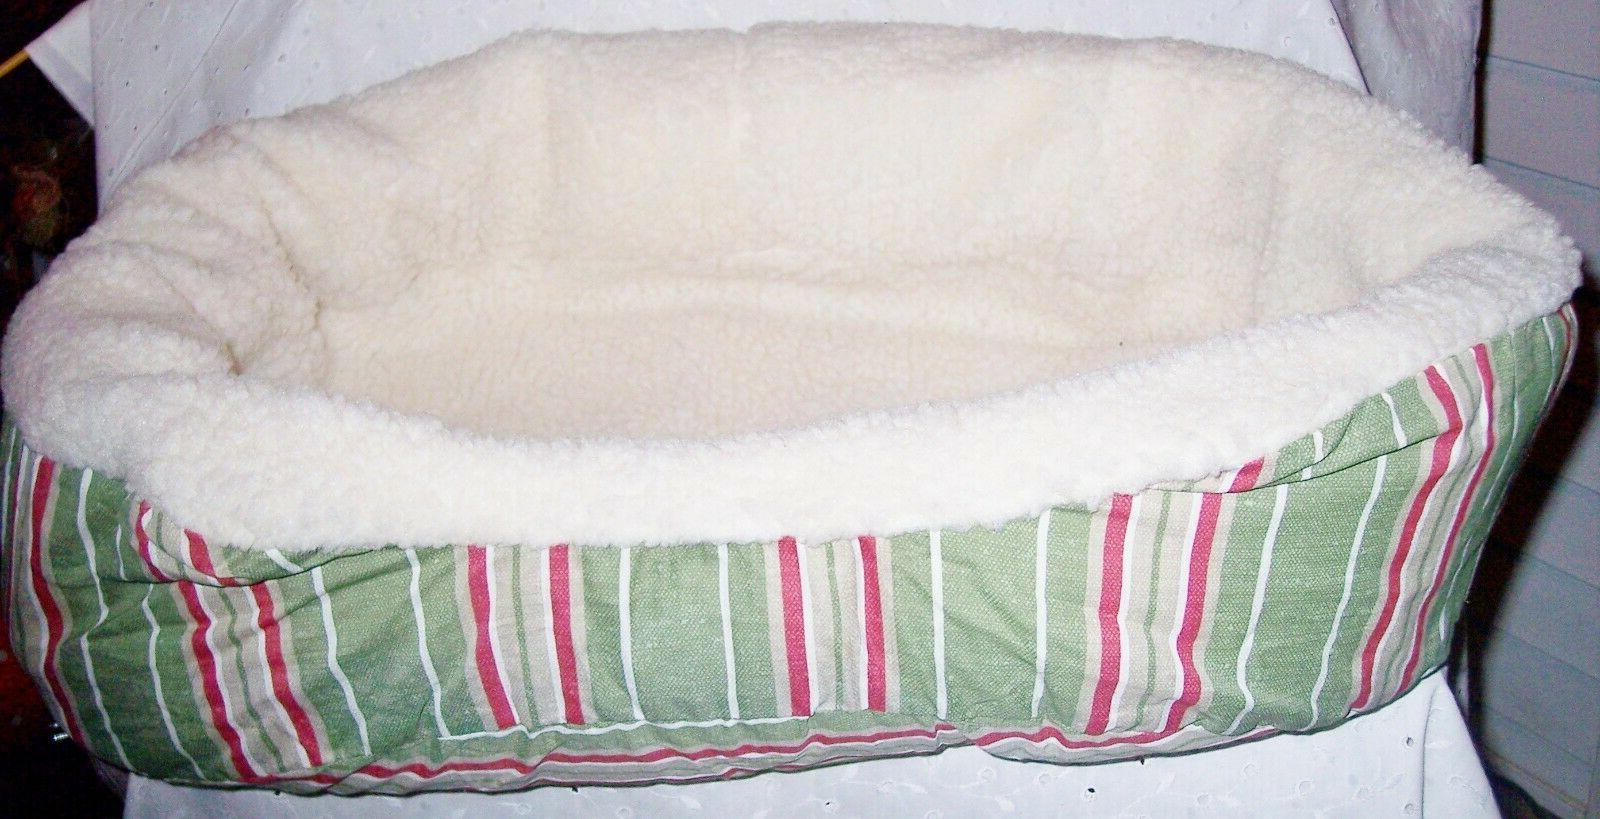 DOG NESTING BED COZY BY FILL:STRIPPED OR KHAKI U COLOR